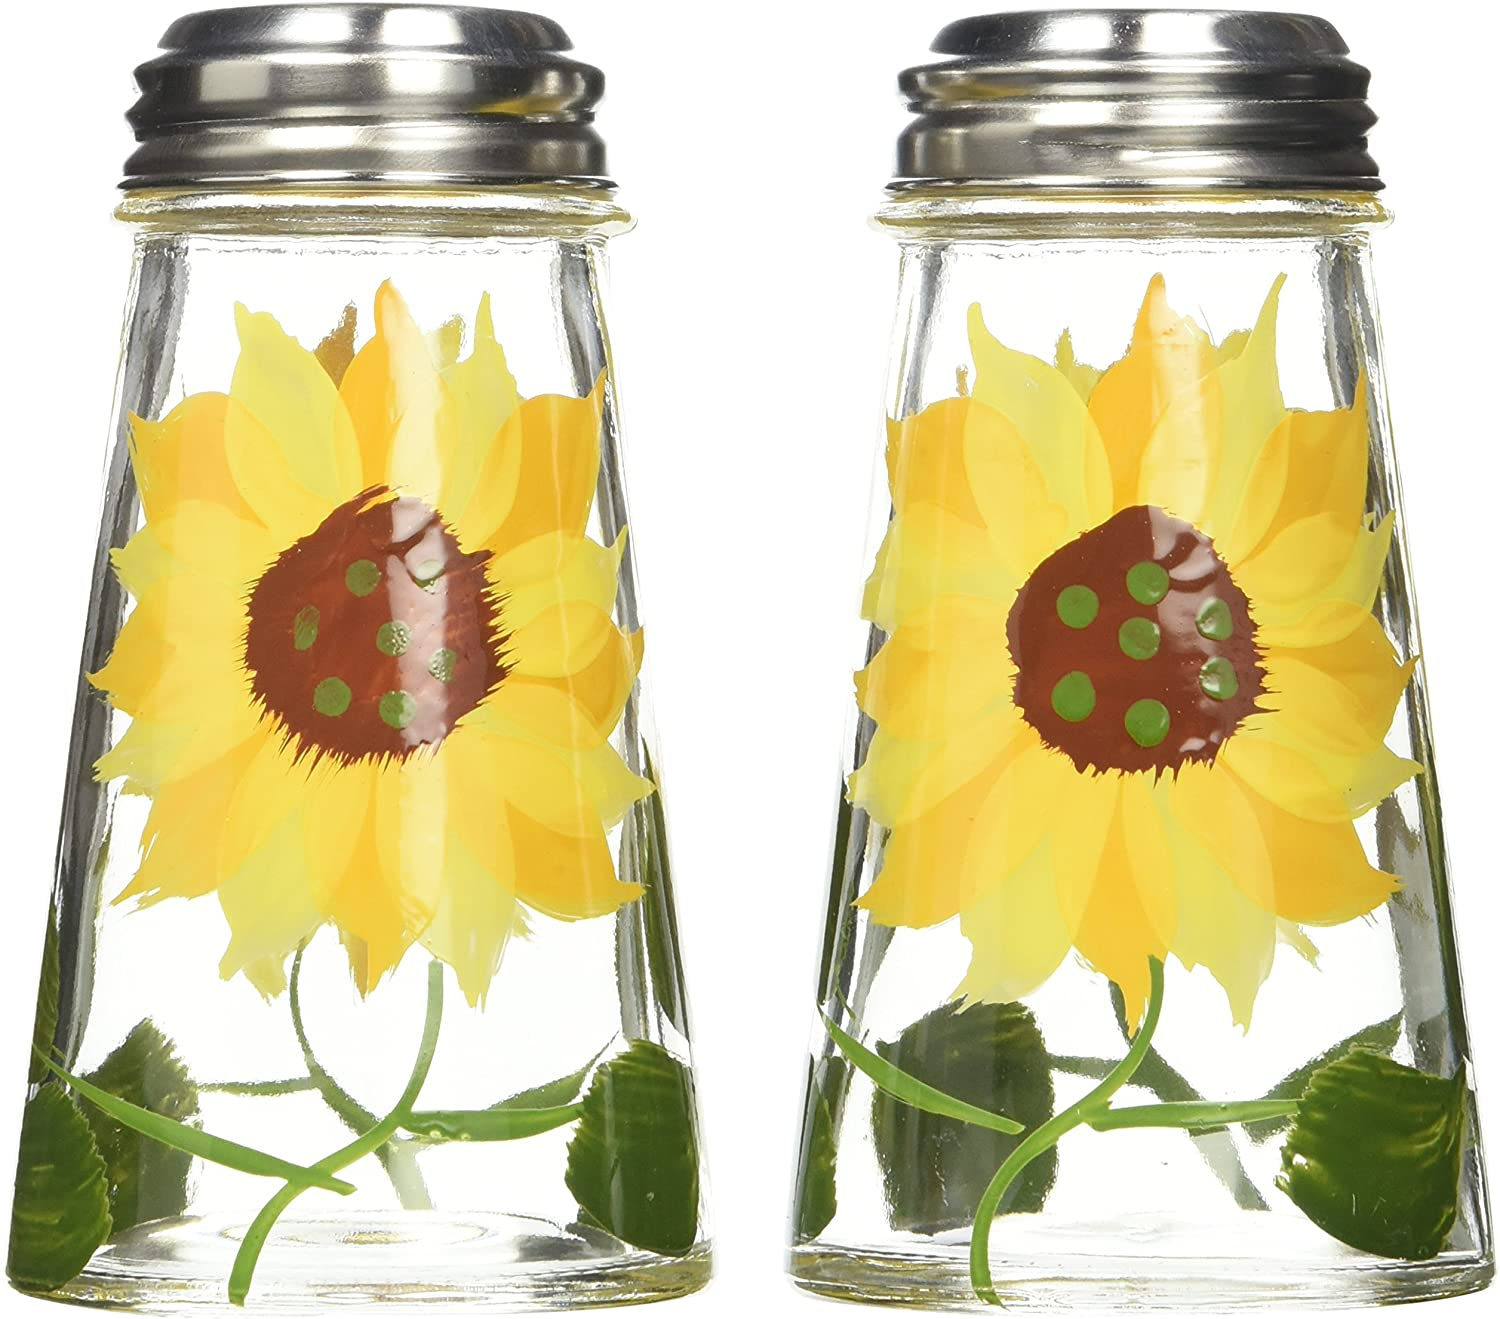 Grant Howard 39013 Hand Painted Tapered Salt and Pepper Shaker Set, Sunflowers, Yellow, 2,